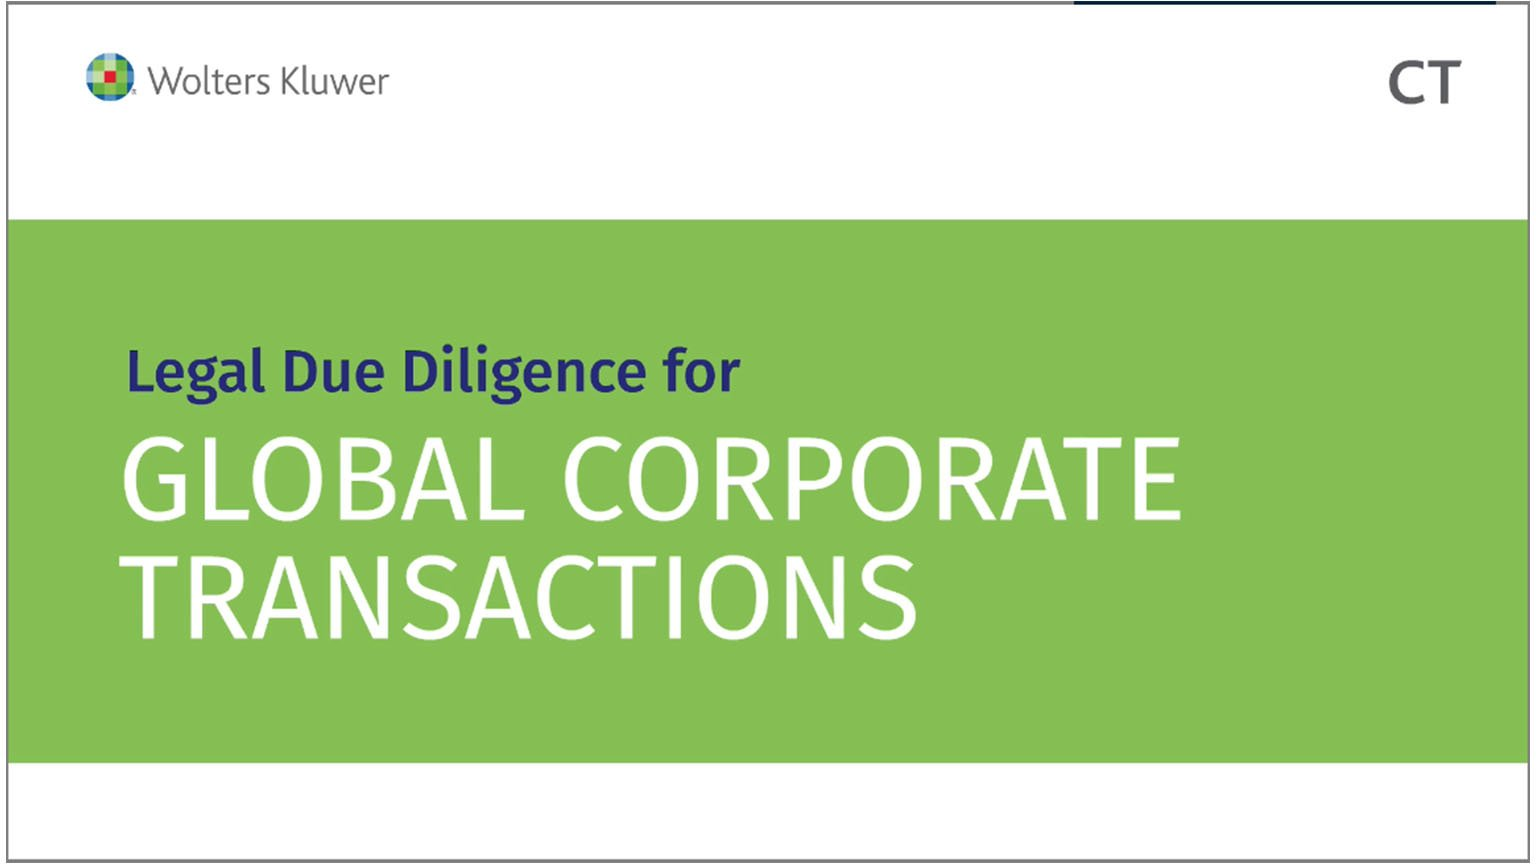 Legal Due Diligence for Global Corporate Transactions